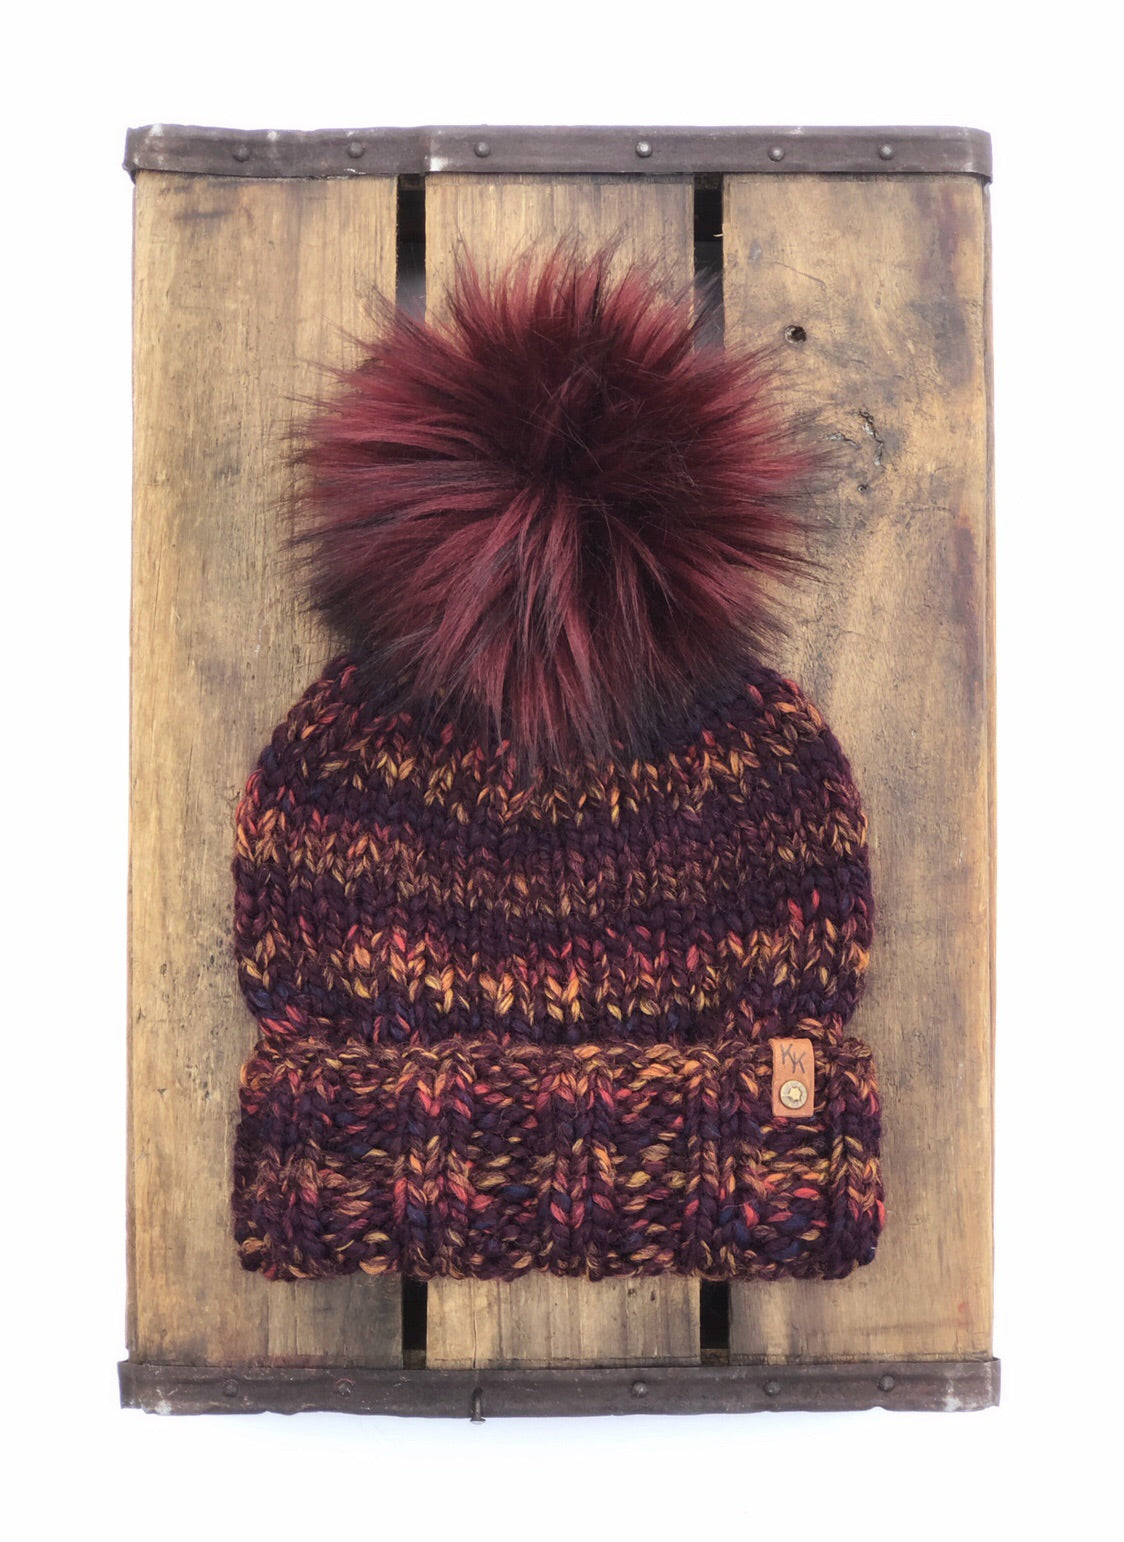 Ed's Hat Unisex Adult Folded Brim Beanie Harvest Wool Blend Bordeaux Faux Fur Pom - KitchenKlutter